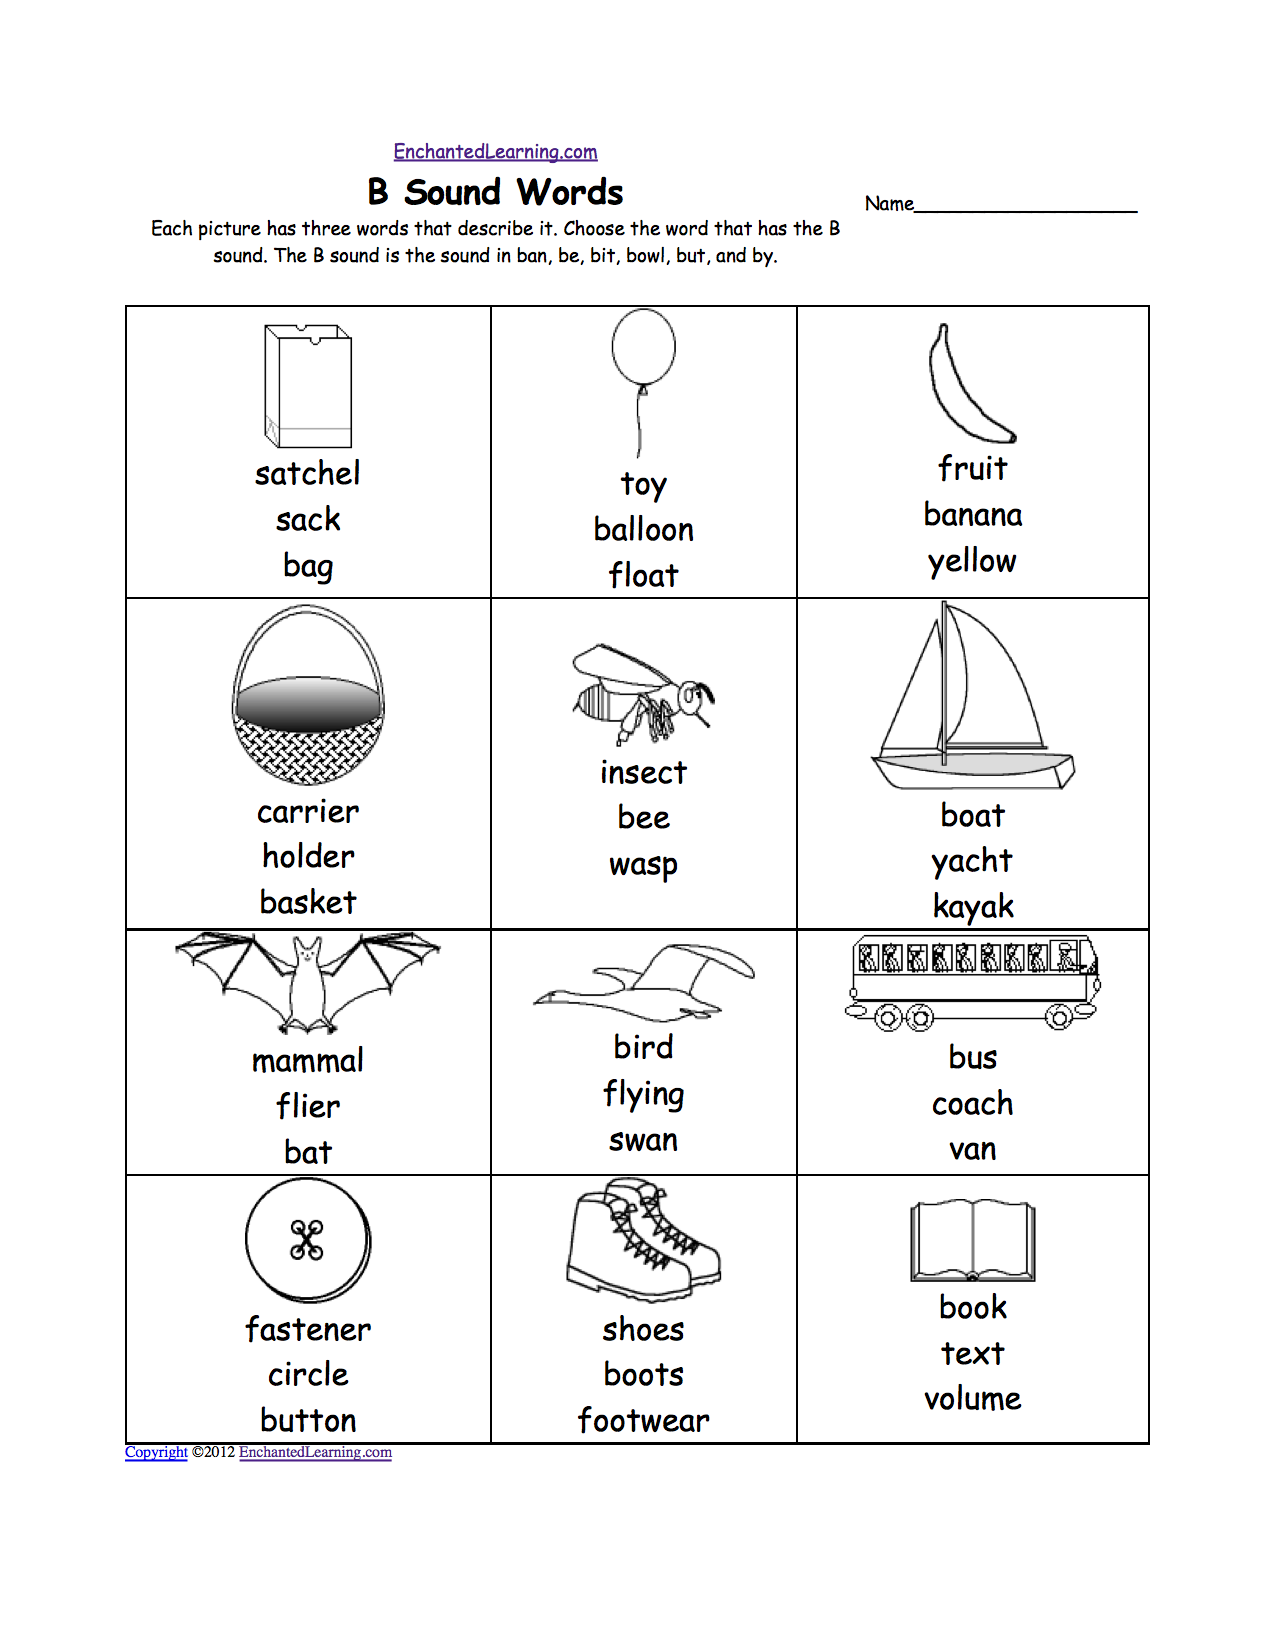 Proatmealus  Wonderful Phonics Worksheets Multiple Choice Worksheets To Print  With Engaging Quotbquot Sound Phonics Worksheet Multiple Choice Each Picture Has Three Words That Describe It Choose The Word That Has A Quotbquot Sound The Quotbquot Sound Is The Sound  With Enchanting Good Vs Well Worksheet Also Money Worksheets First Grade In Addition Personal Monthly Budget Worksheet And Mesopotamia Map Worksheet As Well As Worksheet Names Of Ionic Compounds Additionally Heterogeneous And Homogeneous Mixtures Worksheet From Enchantedlearningcom With Proatmealus  Engaging Phonics Worksheets Multiple Choice Worksheets To Print  With Enchanting Quotbquot Sound Phonics Worksheet Multiple Choice Each Picture Has Three Words That Describe It Choose The Word That Has A Quotbquot Sound The Quotbquot Sound Is The Sound  And Wonderful Good Vs Well Worksheet Also Money Worksheets First Grade In Addition Personal Monthly Budget Worksheet From Enchantedlearningcom